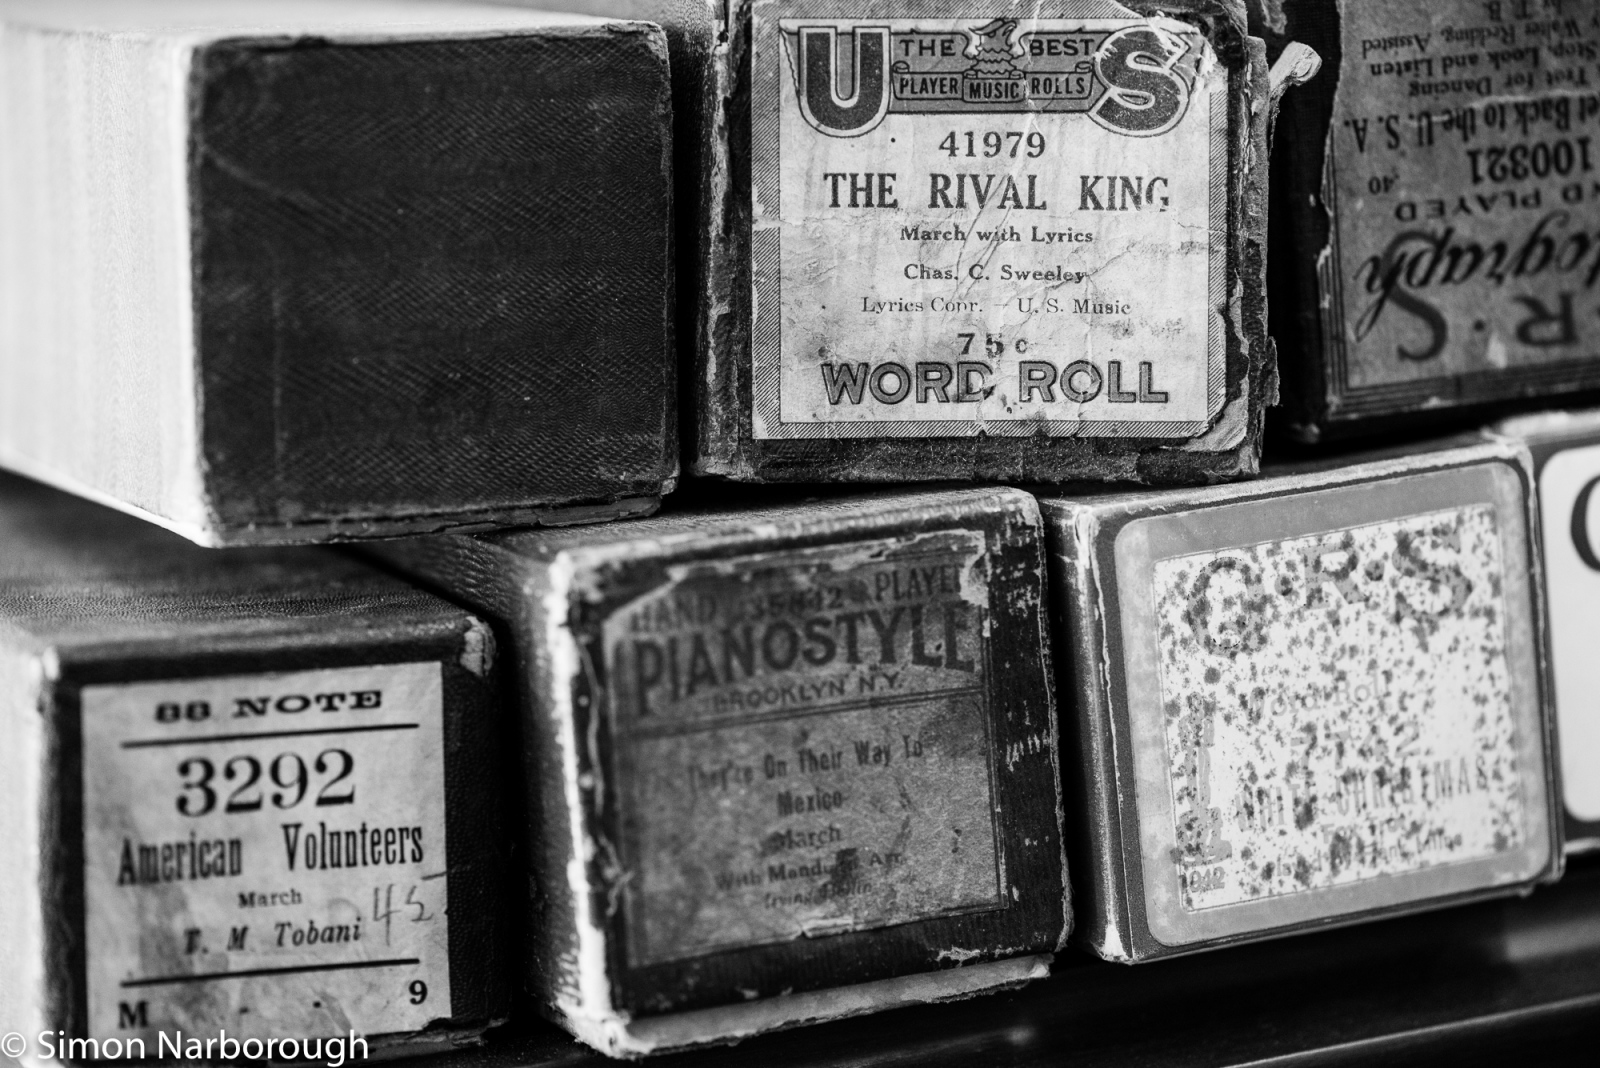 Some of the old player piano rollers that have been collected.